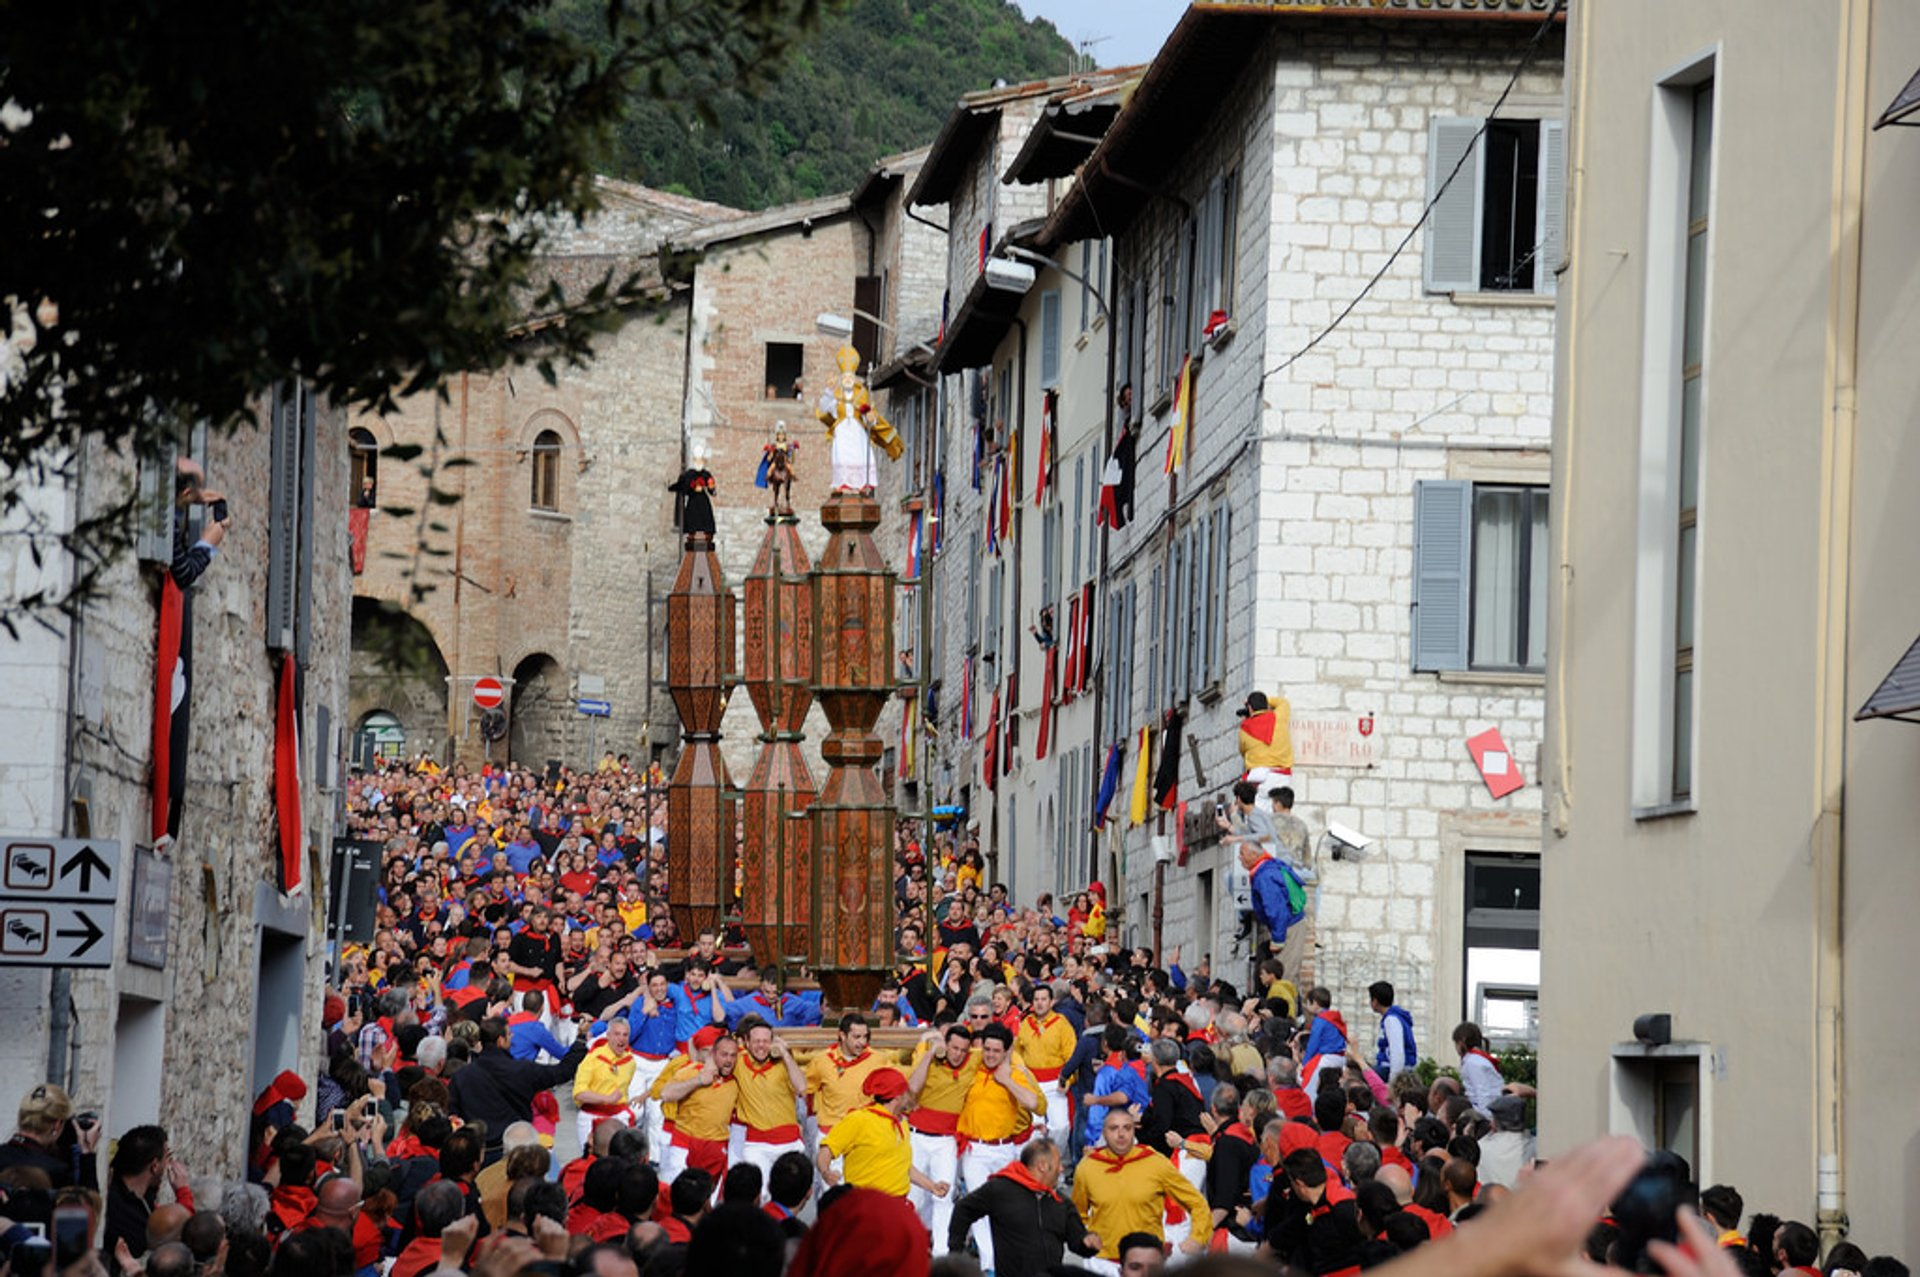 Gubbio Festa dei Ceri (Race of the Candles) in Italy 2020 - Best Time